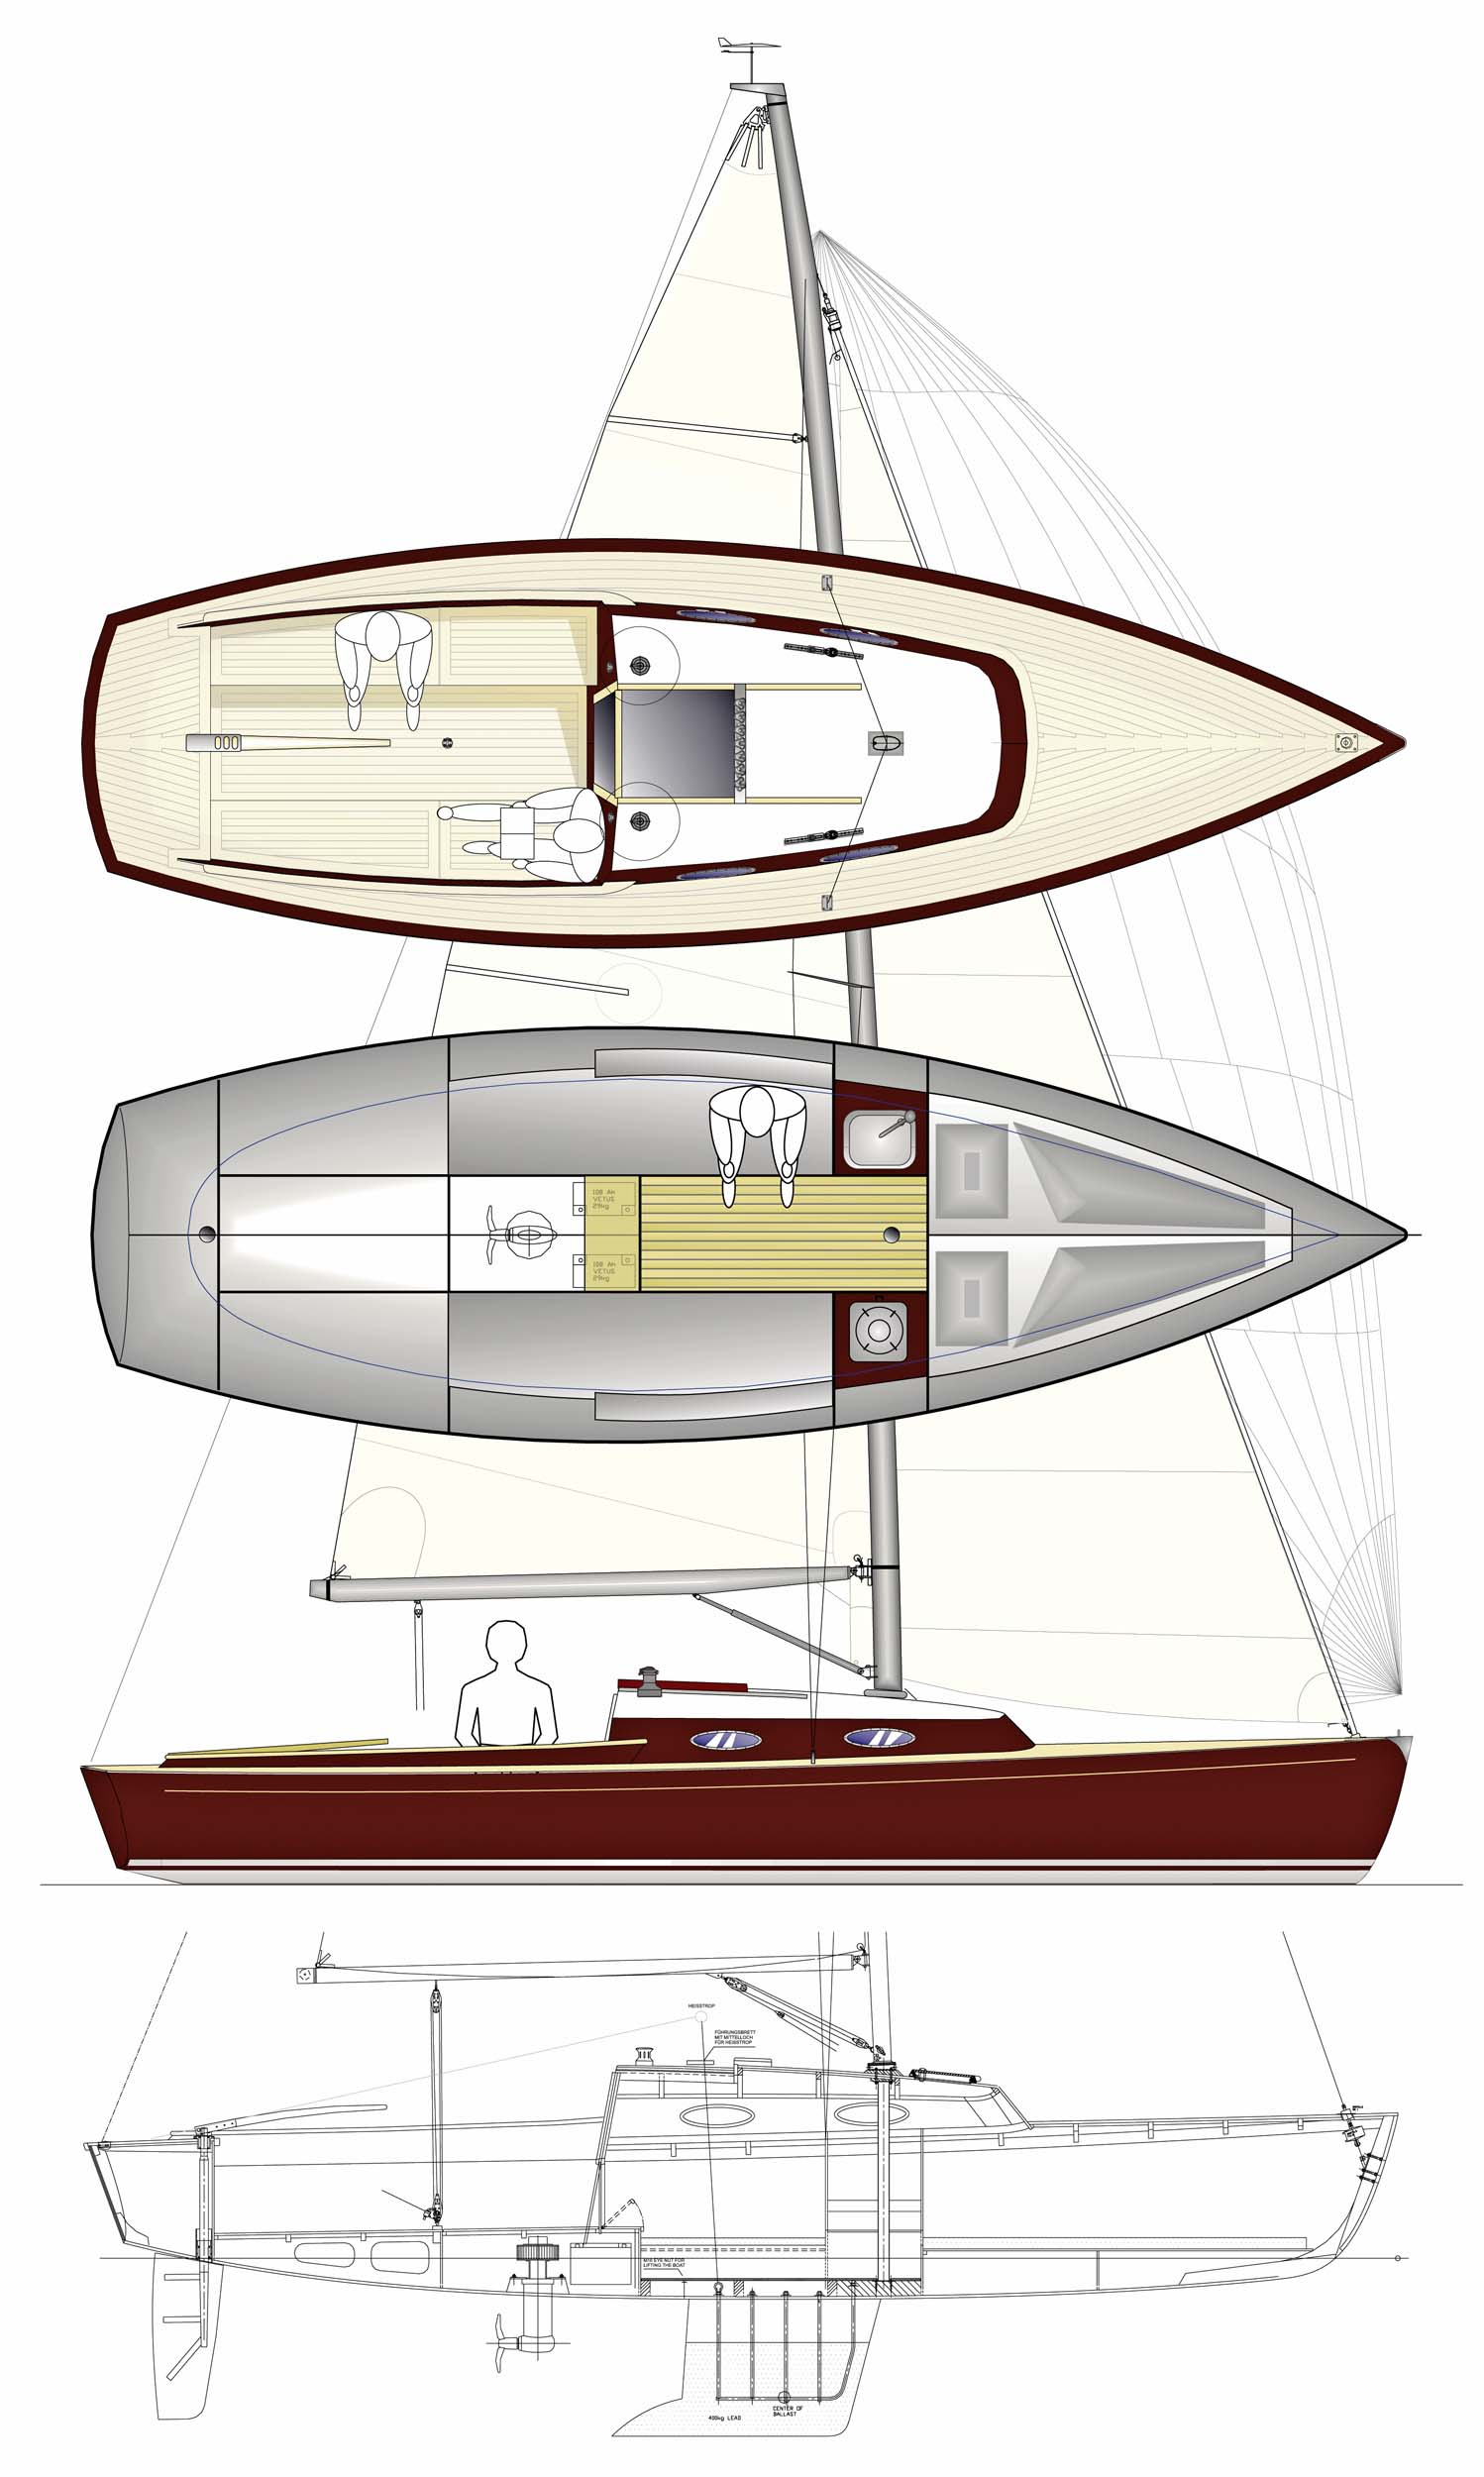 Berckemeyer yacht design plans for modern and classic sailing yachts ccuart Gallery